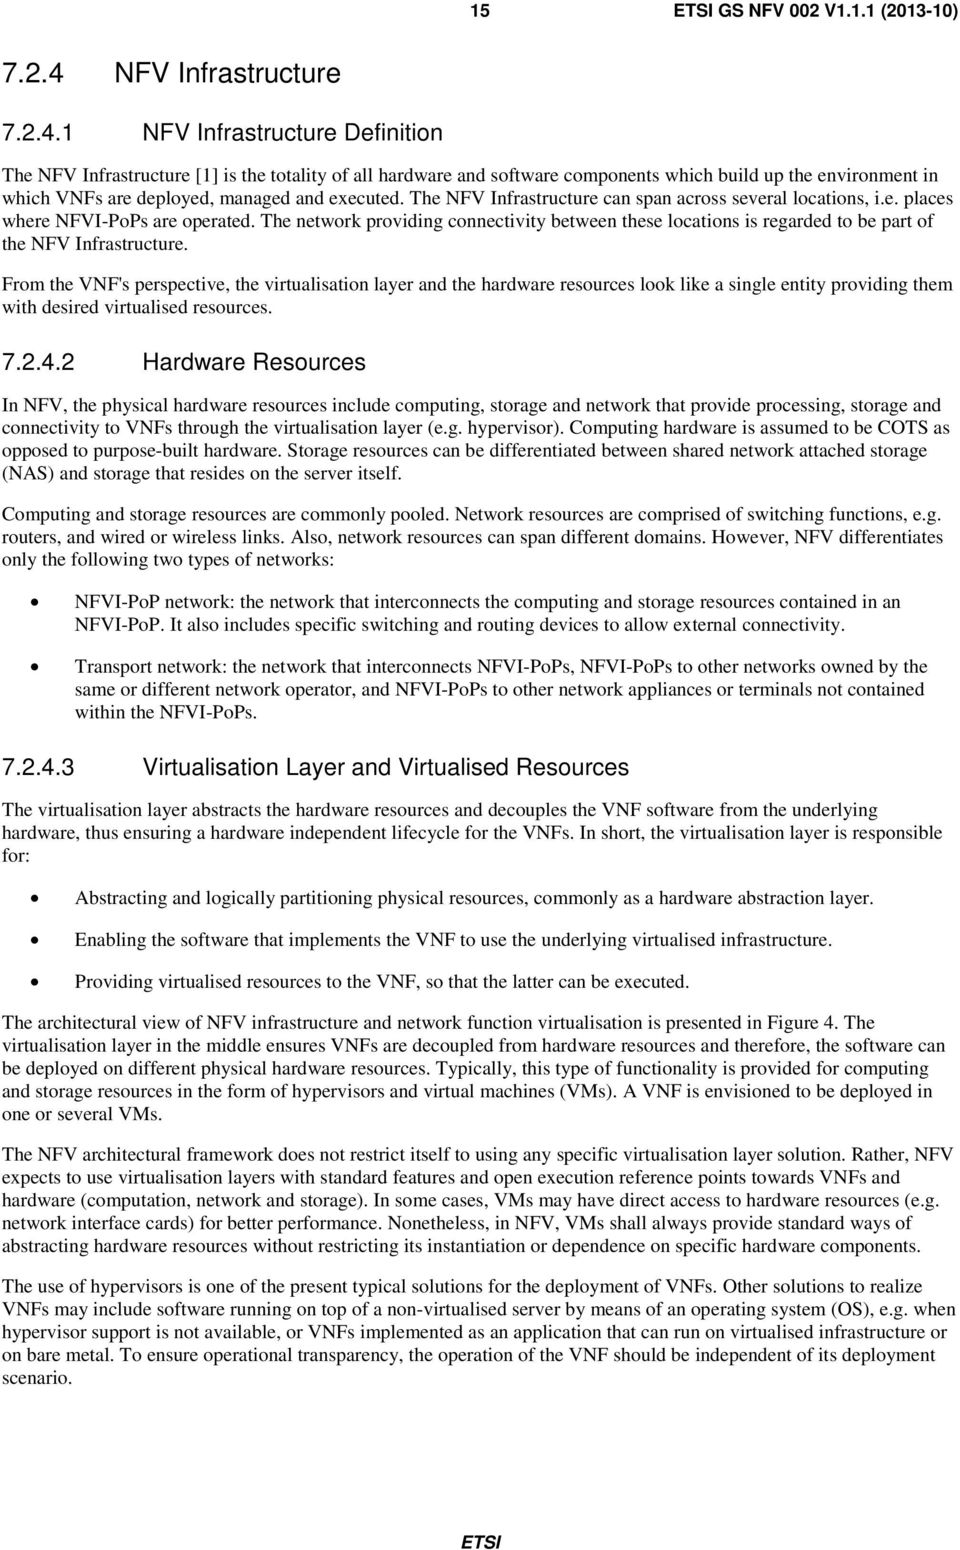 1 NFV Infrastructure Definition The NFV Infrastructure [1] is the totality of all hardware and software components which build up the environment in which VNFs are deployed, managed and executed.